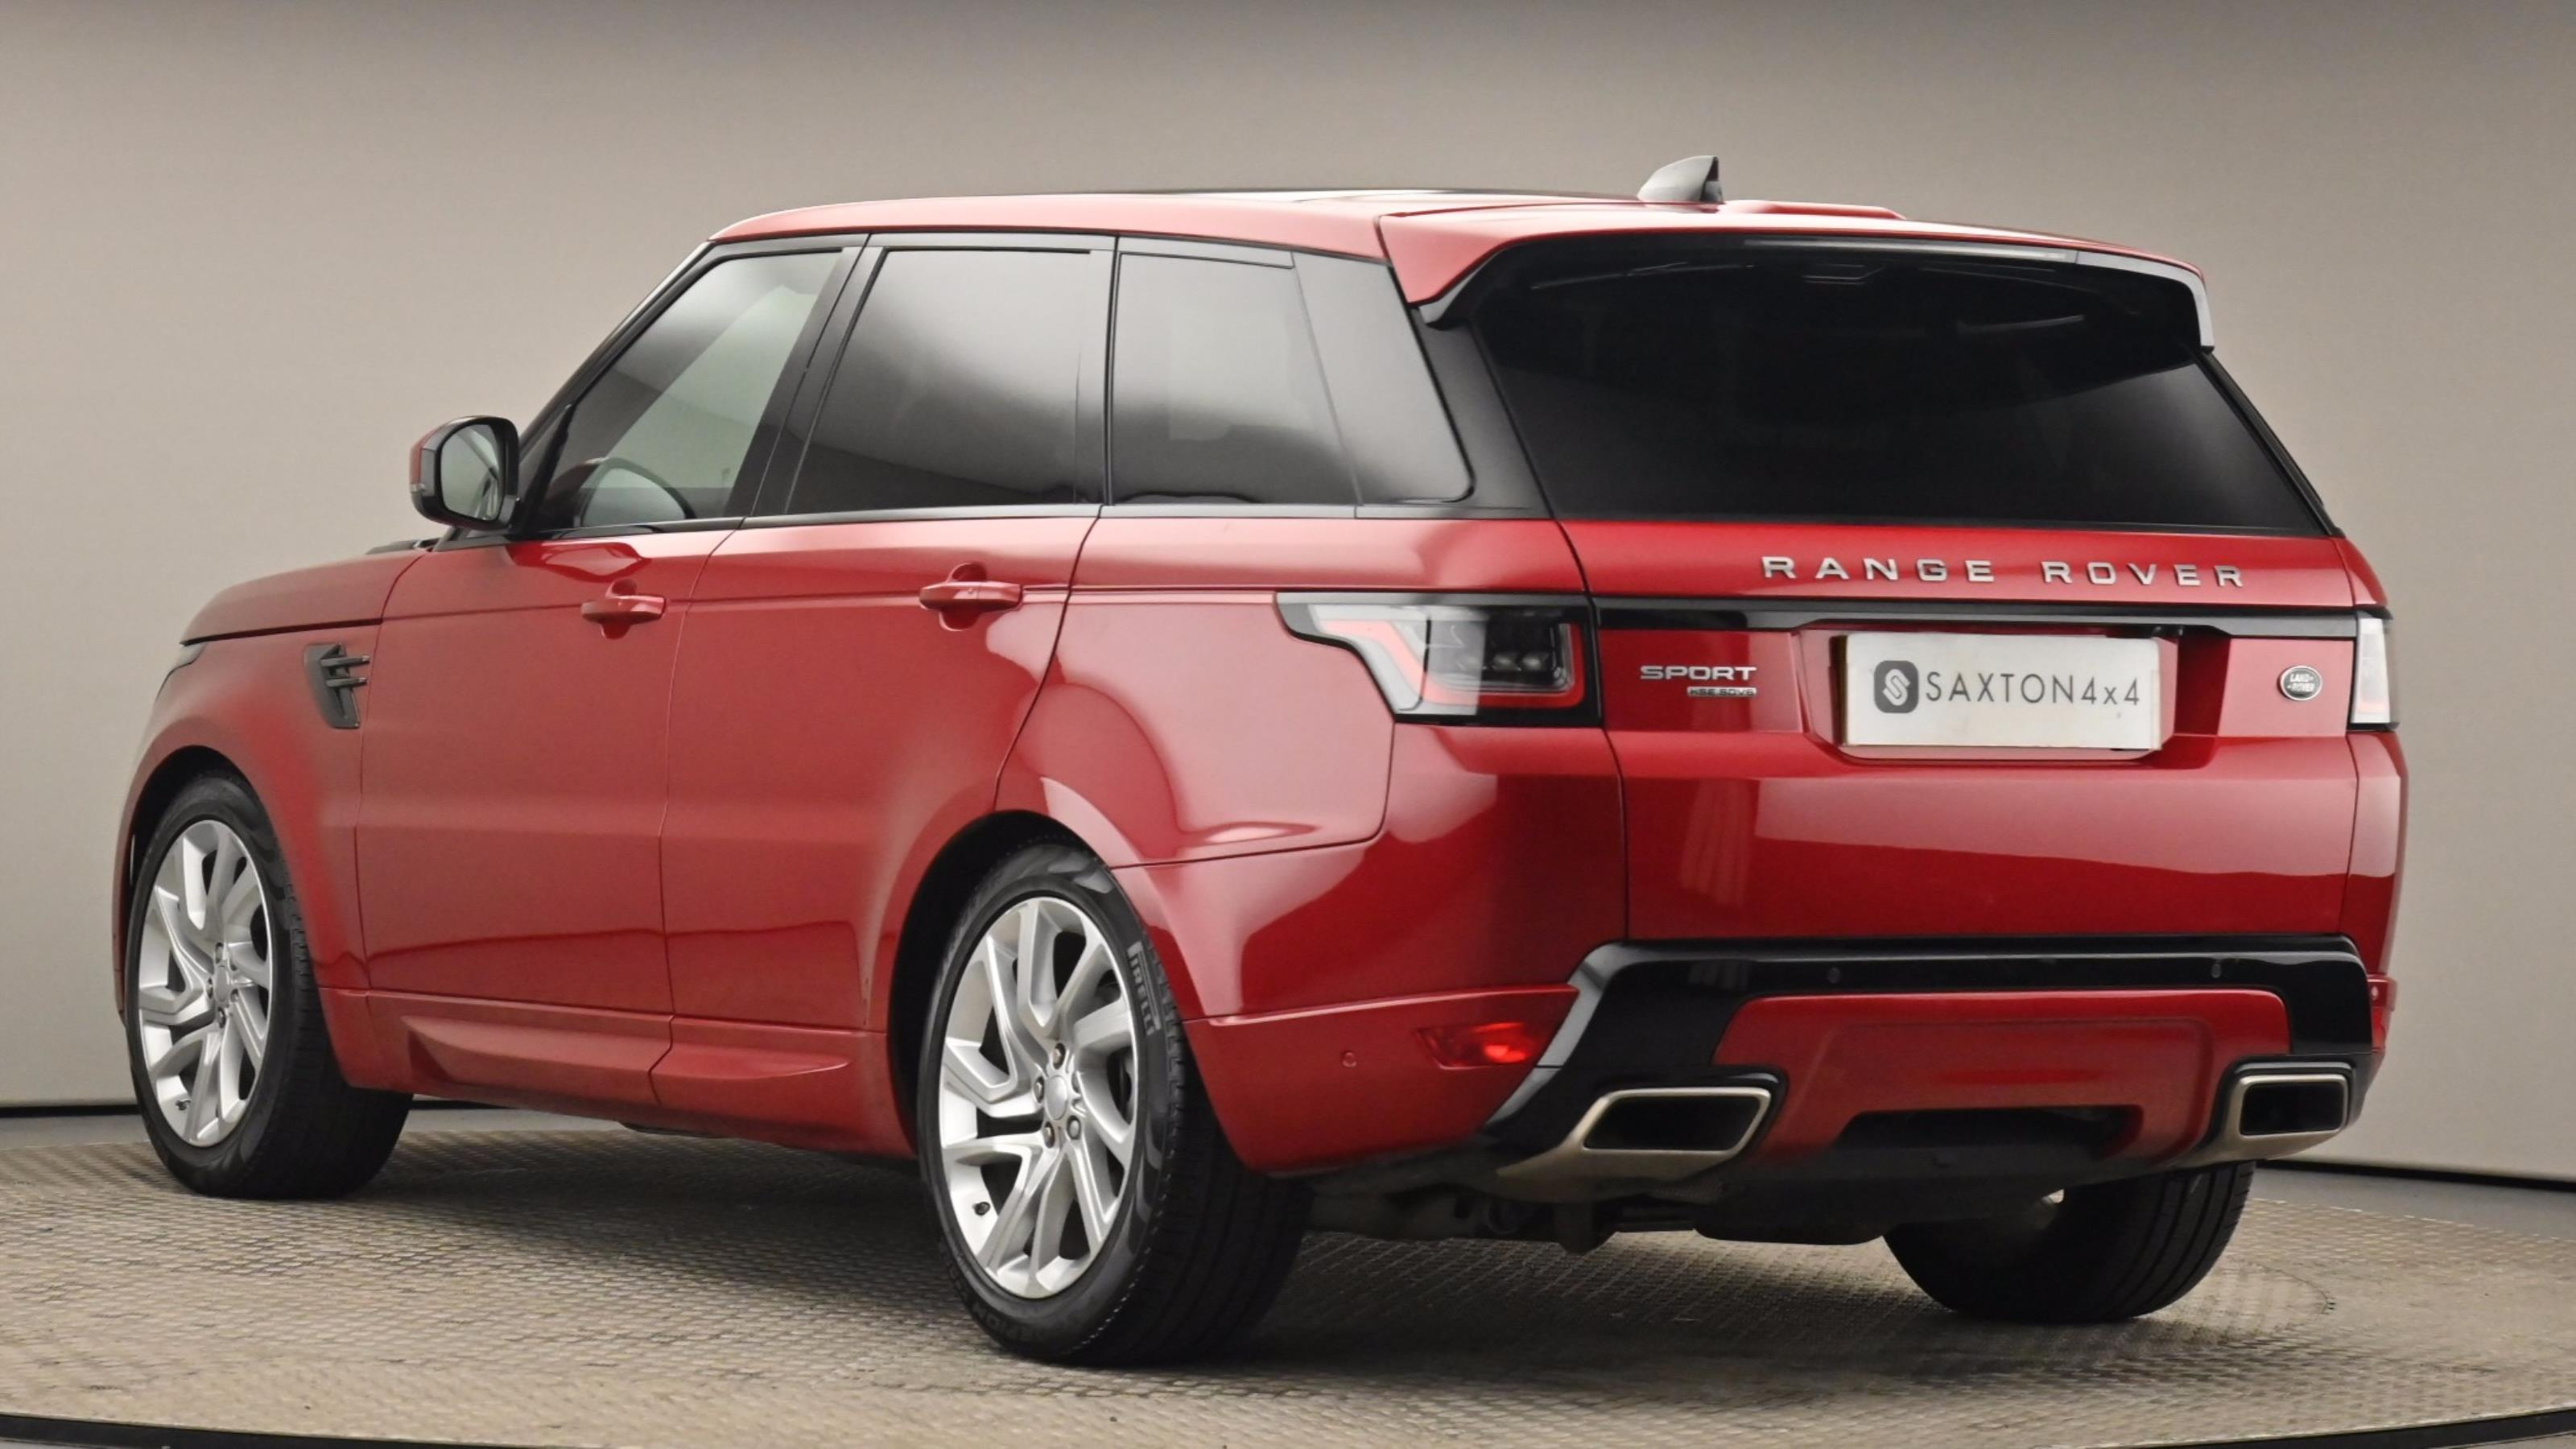 Used 2018 Land Rover RANGE ROVER SPORT 3.0 SDV6 HSE Dynamic 5dr Auto [7 Seat] RED at Saxton4x4